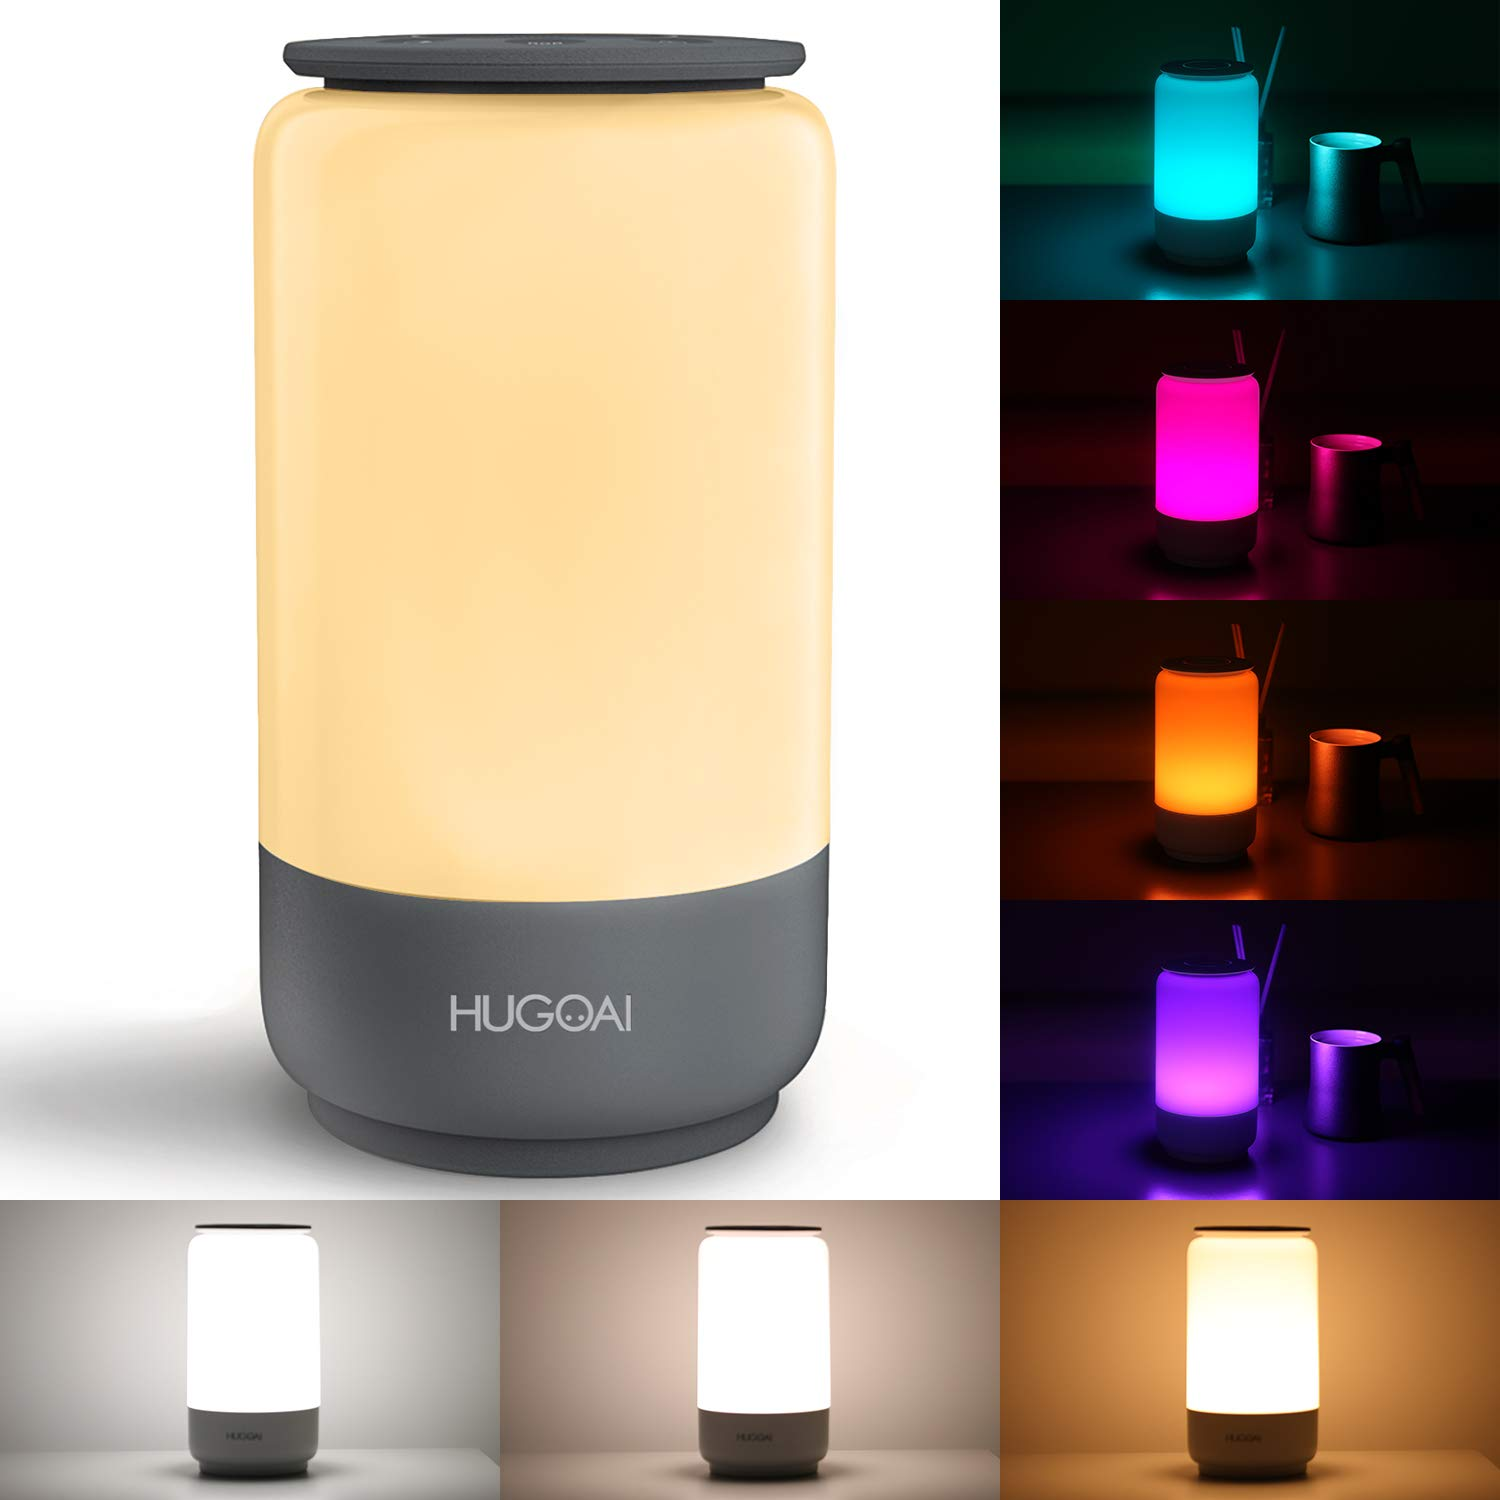 HUGOAI LED Table Lamp, Bedside Lamp, Night Light for Bedroom with Dimmable Whites, Vibrant RGB Colors and Memory Function, No Flicker - Grey